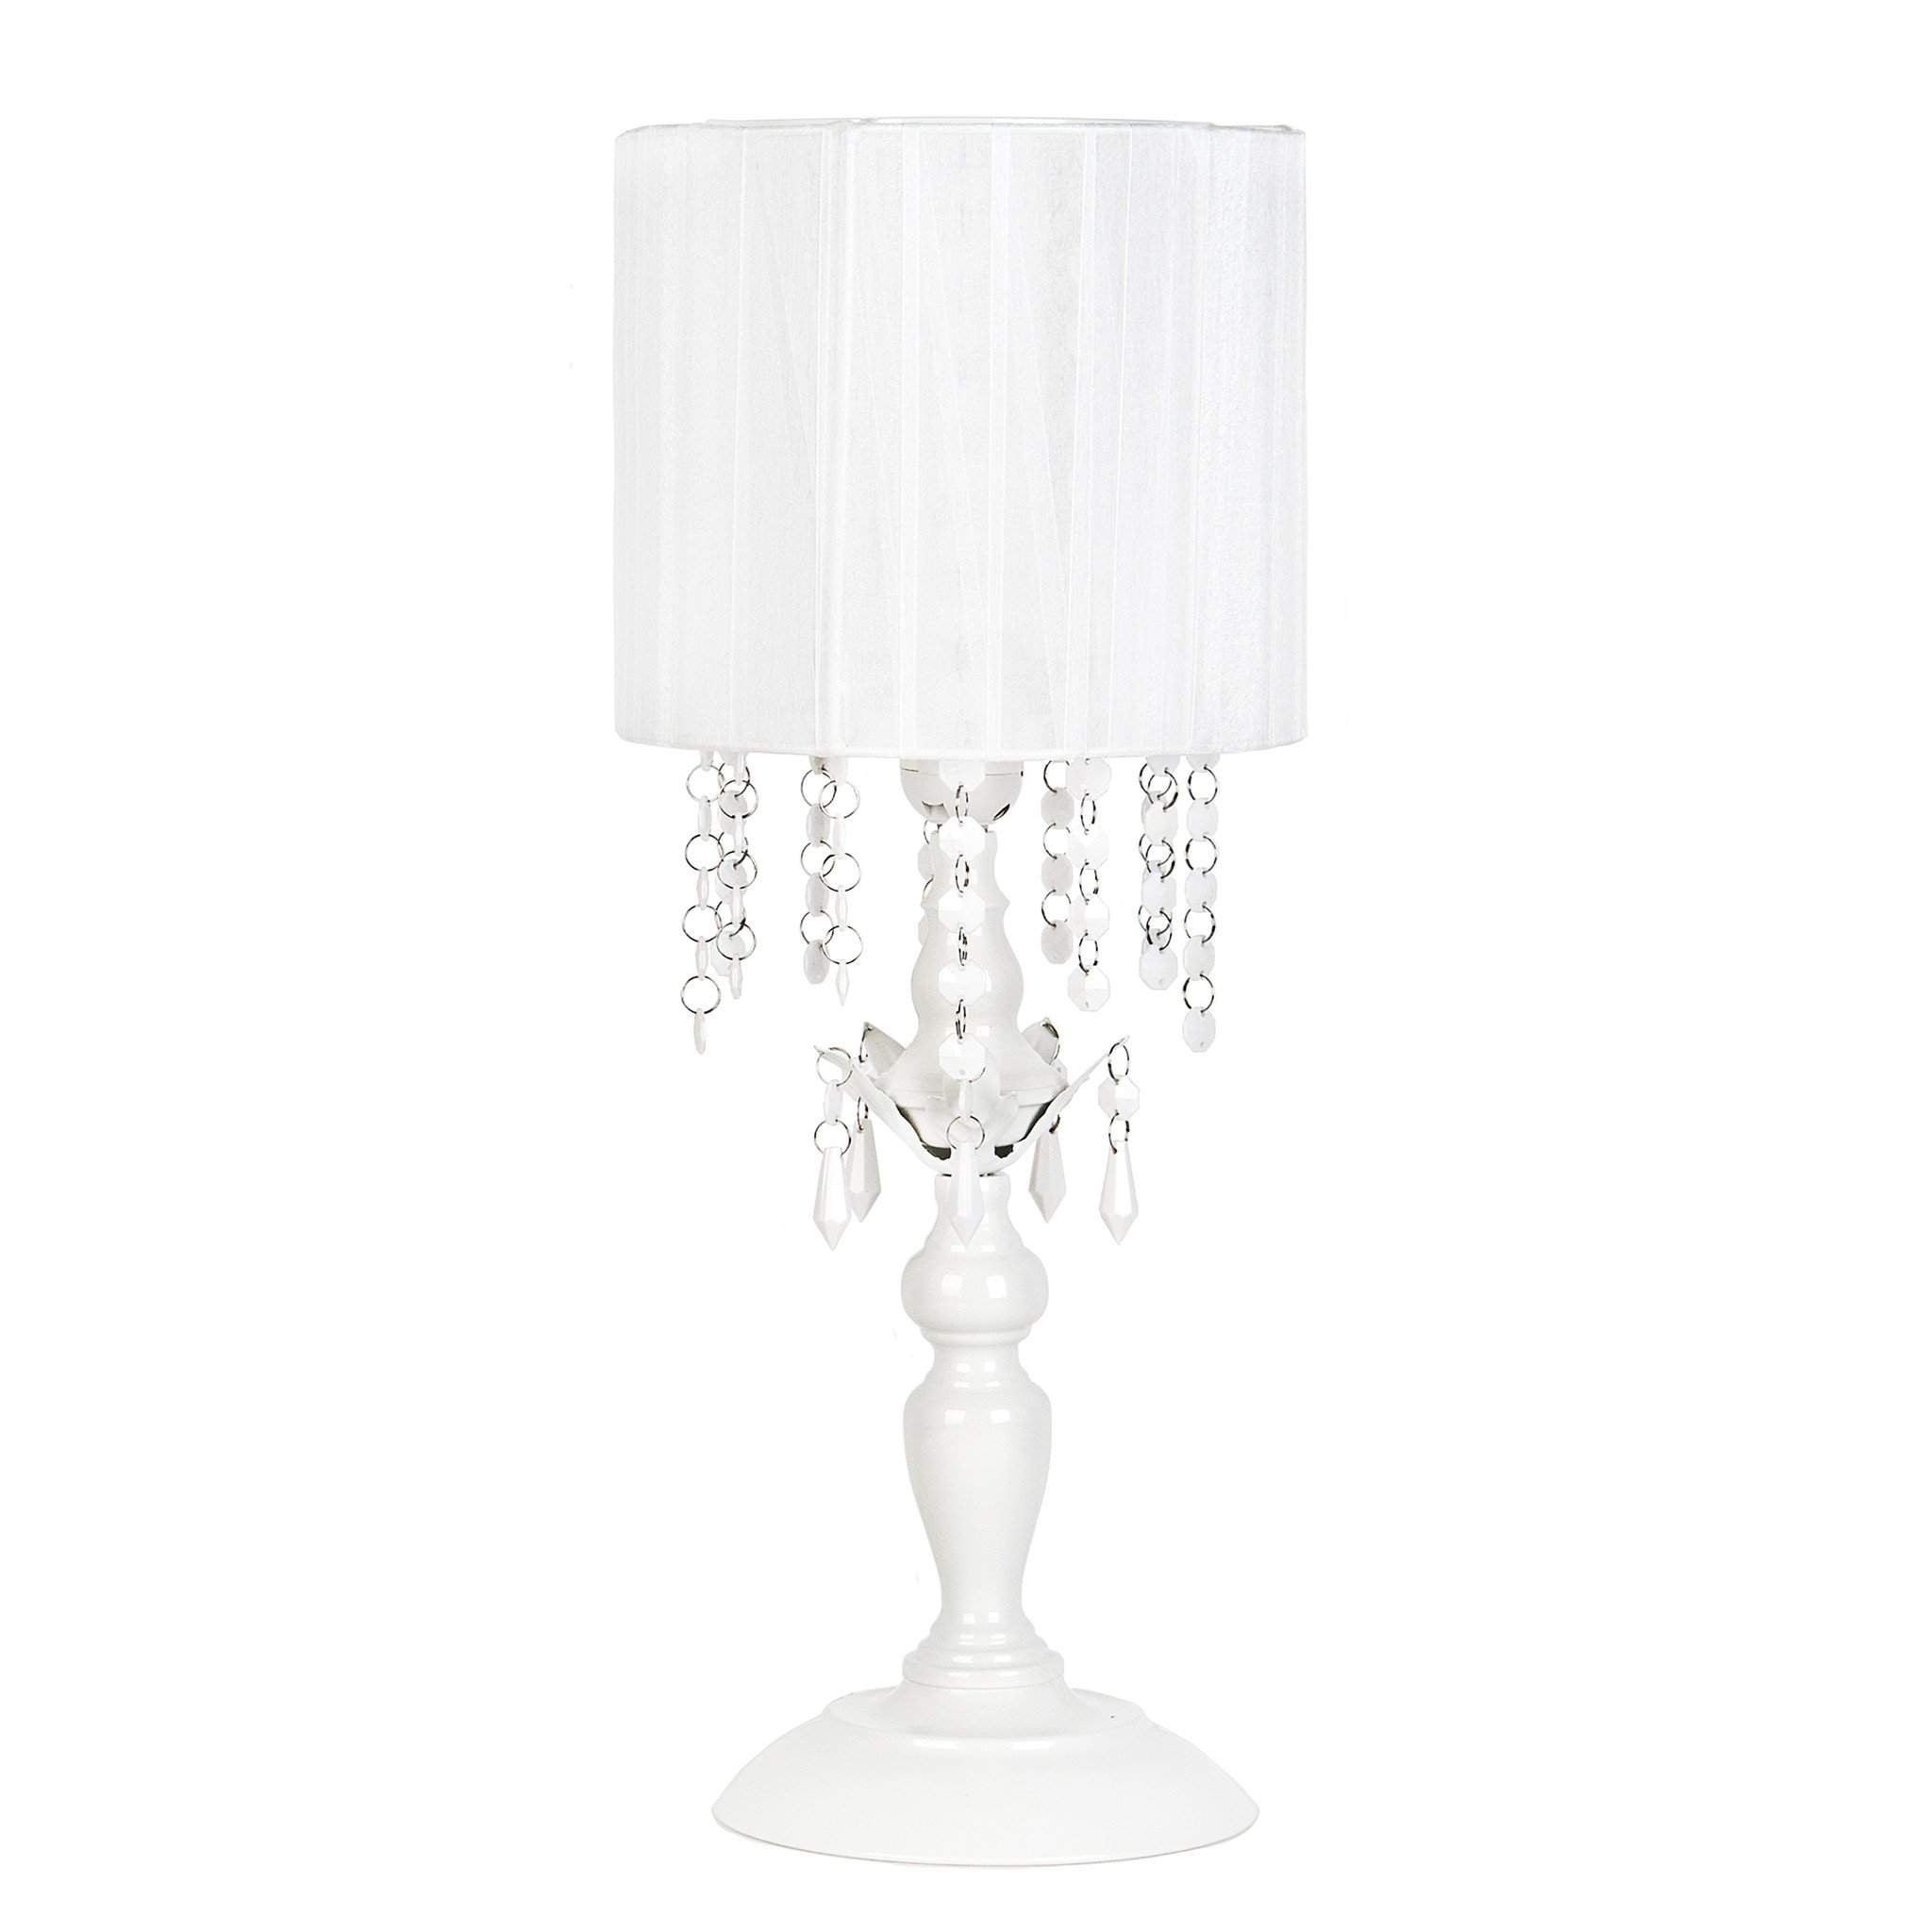 beads sears of depot jhumar led our modern quartz lamp wide finish lighting in accent inch and price explore unique collection chandeliers all silver wood decorative kitchen tadpoles shades table light chandelier capital bulbs home walmart shown adele standard base lowes